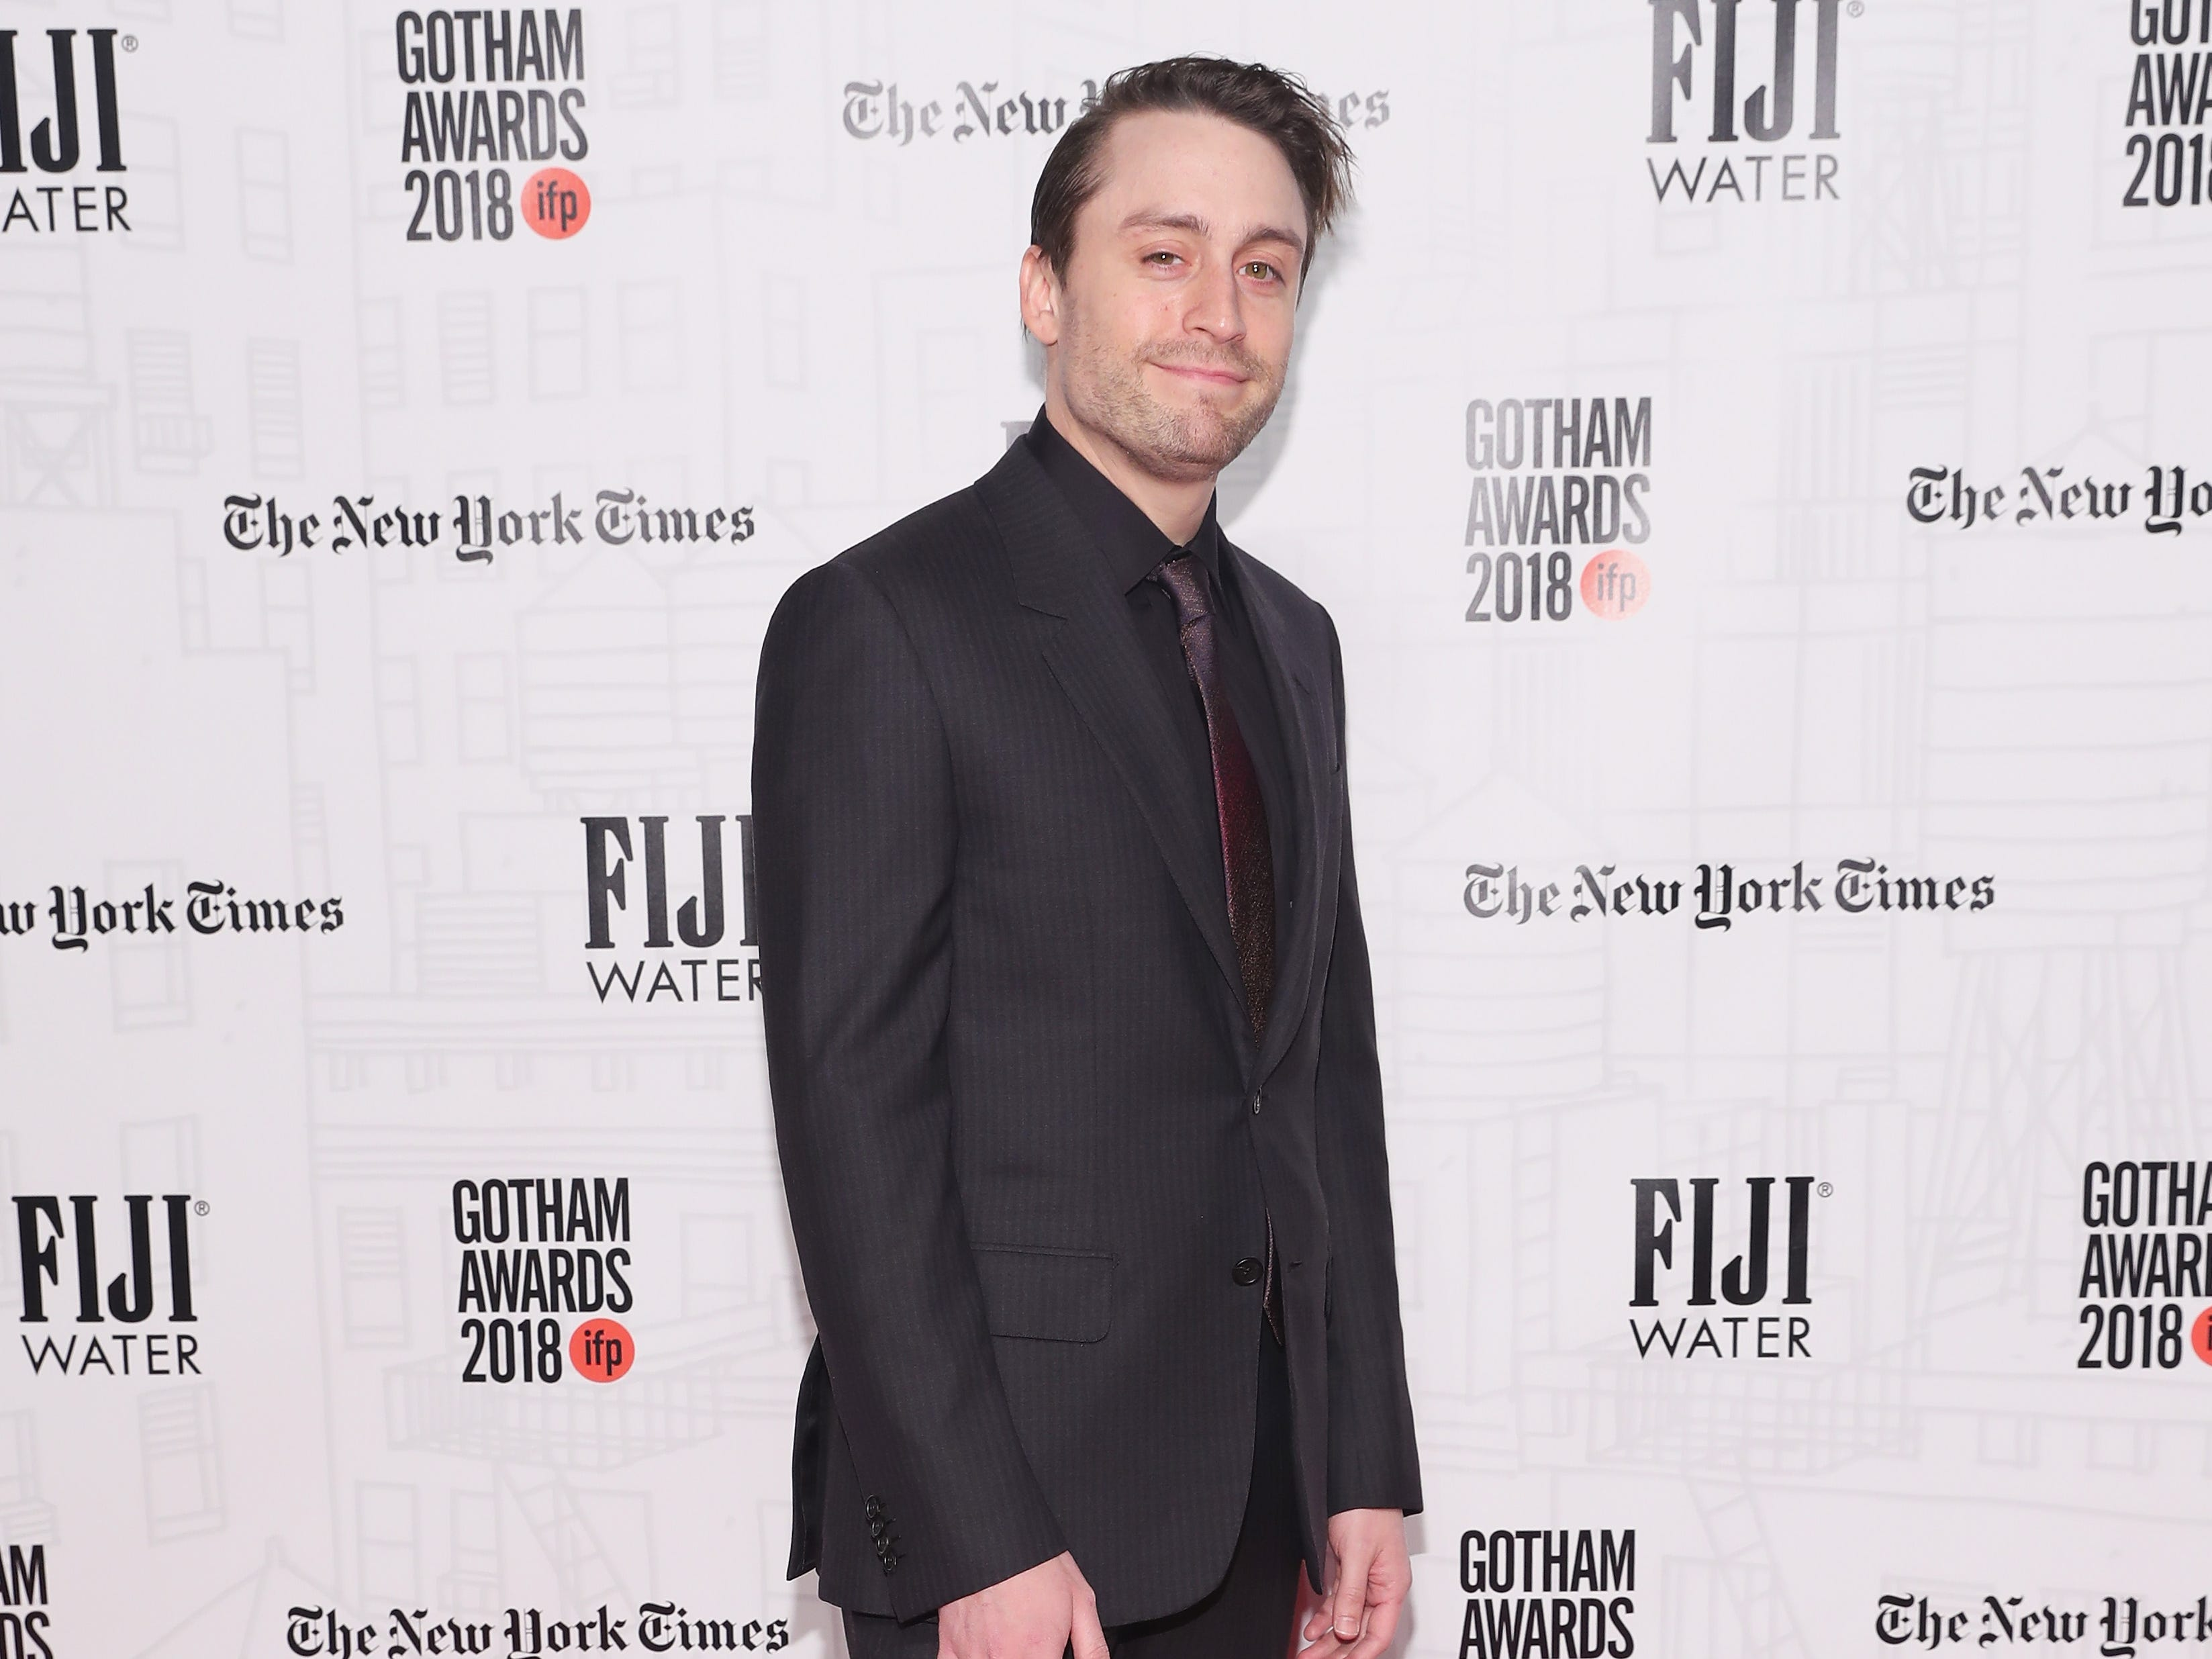 NEW YORK, NY - NOVEMBER 26:  Kieran Culkin attends the 2018 IFP Gotham Awards with FIJI Water at Cipriani, Wall Street on November 26, 2018 in New York City.  (Photo by Cindy Ord/Getty Images for FIJI Water) ORG XMIT: 775261572 ORIG FILE ID: 1065546982